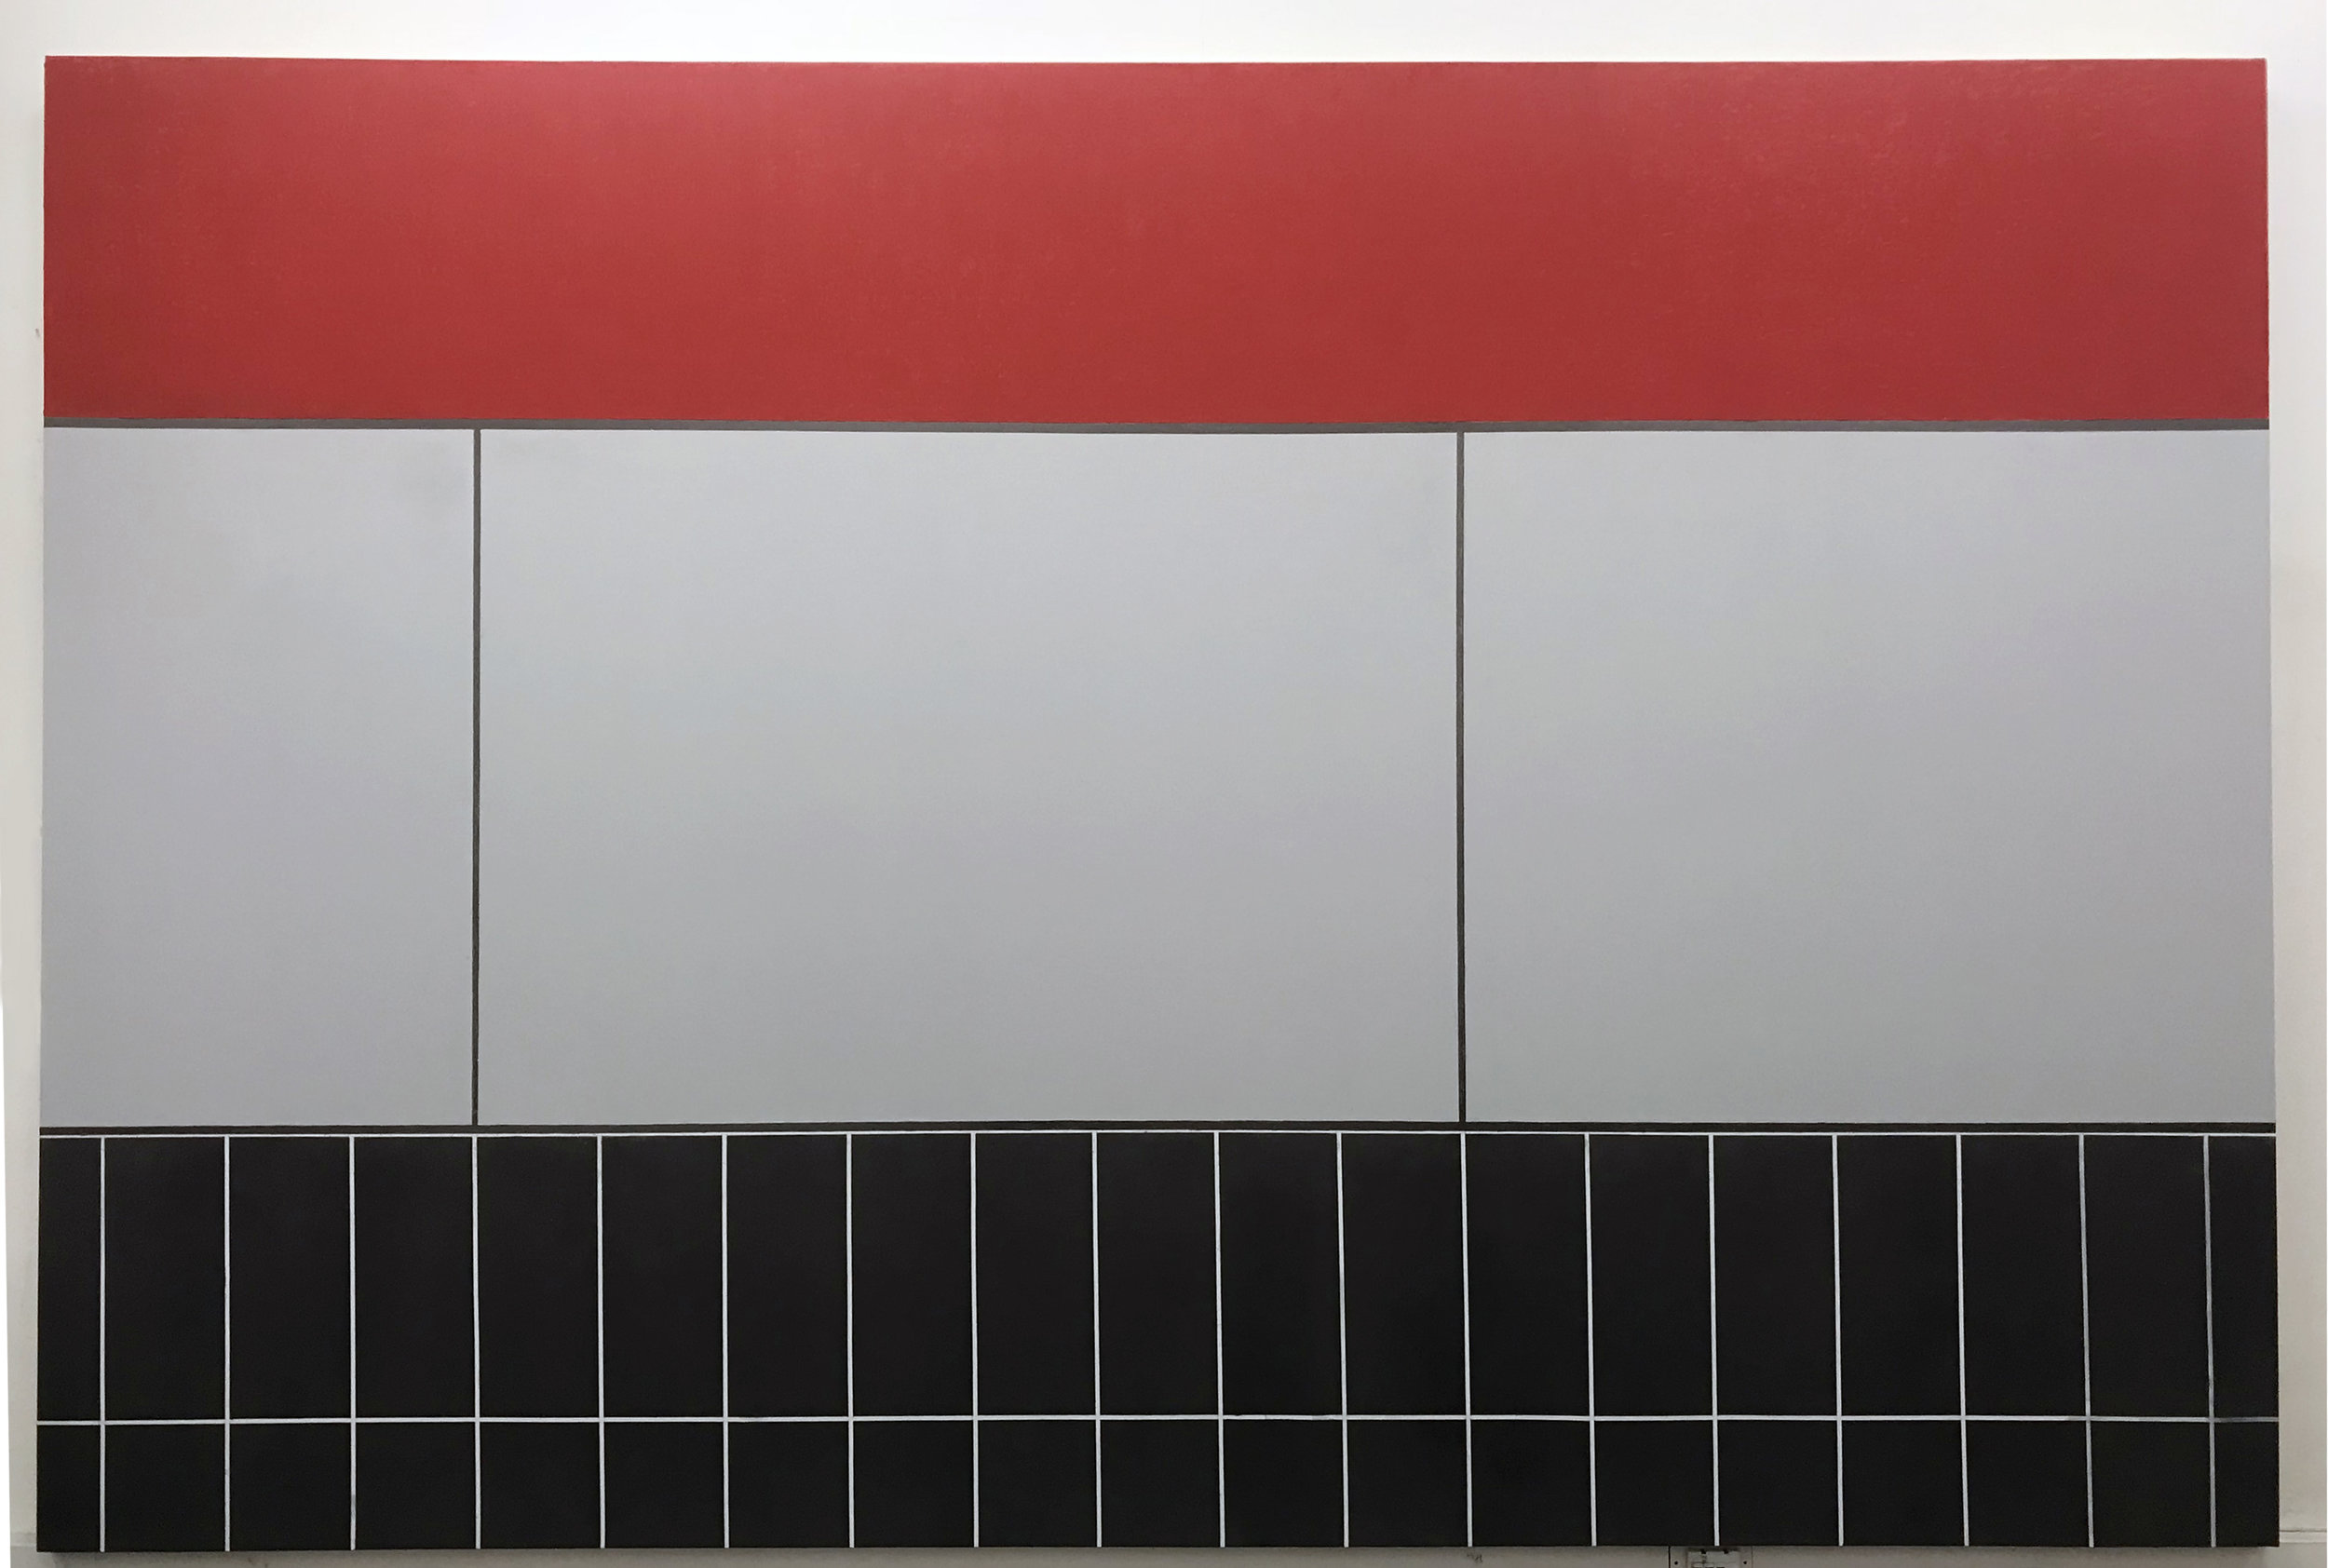 Avantika Bawa    Coliseum Red   Graphite, acrylic and oil stick on panel  80X120 inches  2018